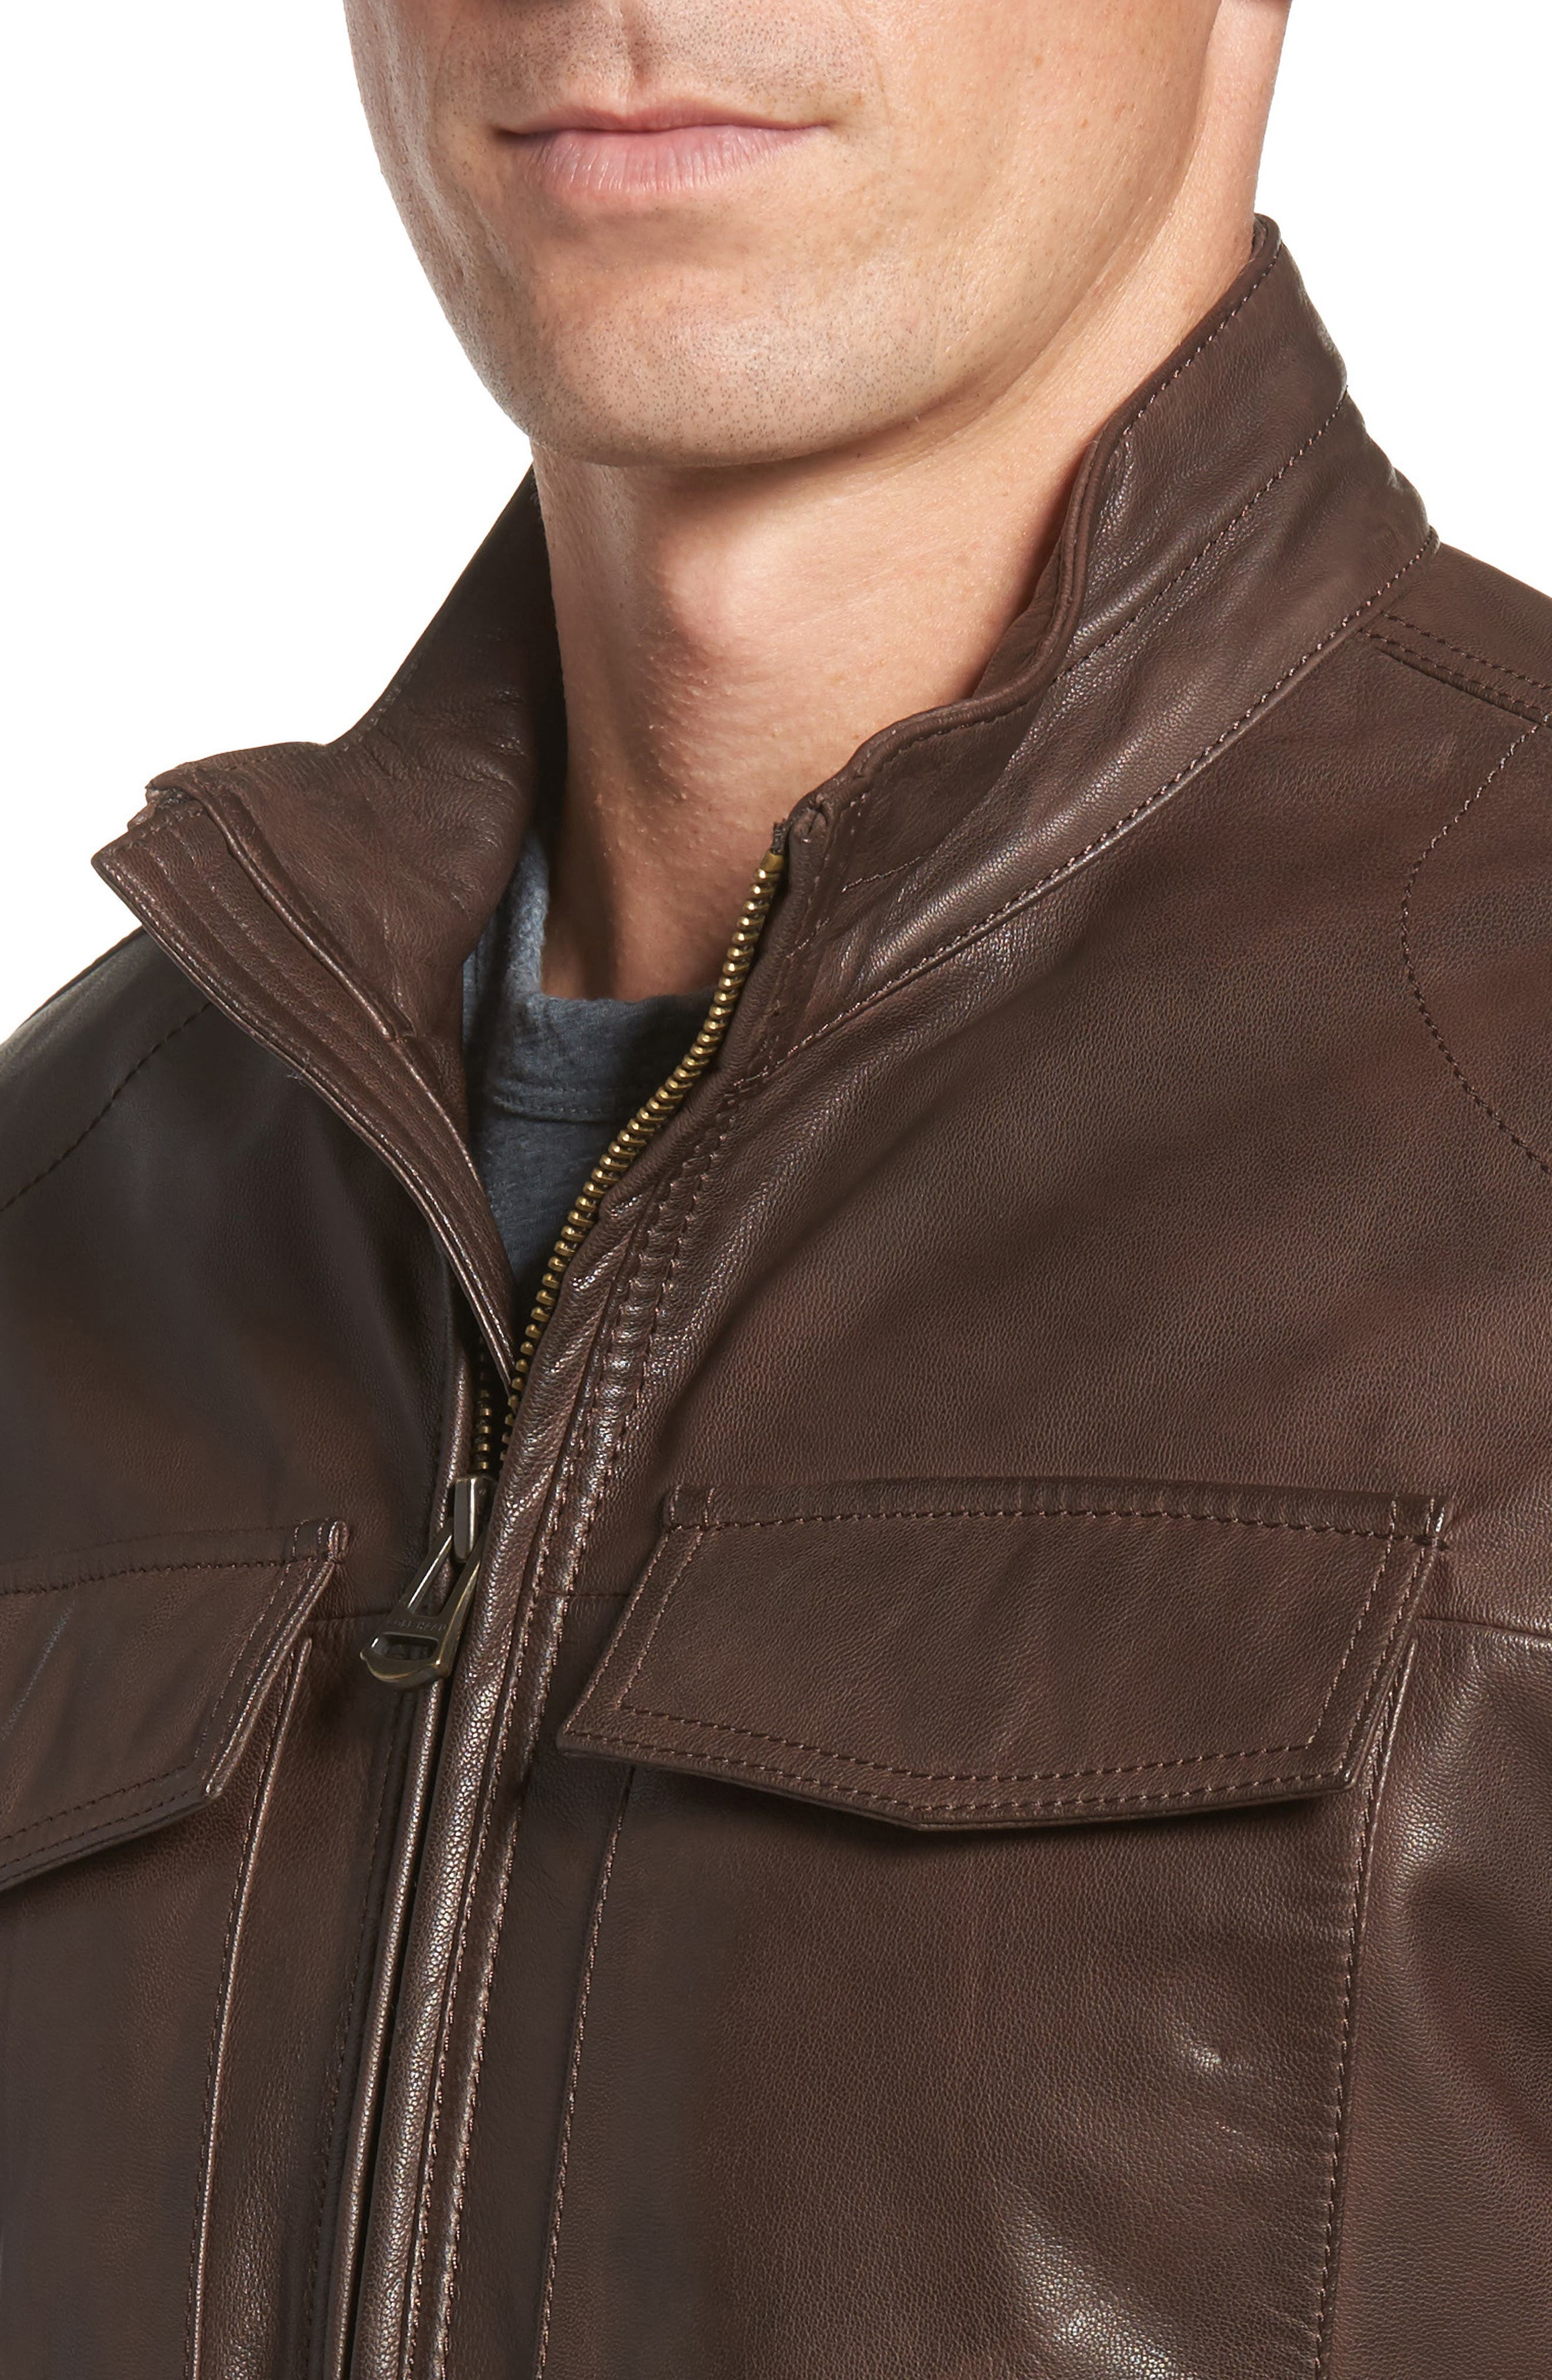 Washed Leather Trucker Jacket,                             Alternate thumbnail 4, color,                             BROWN